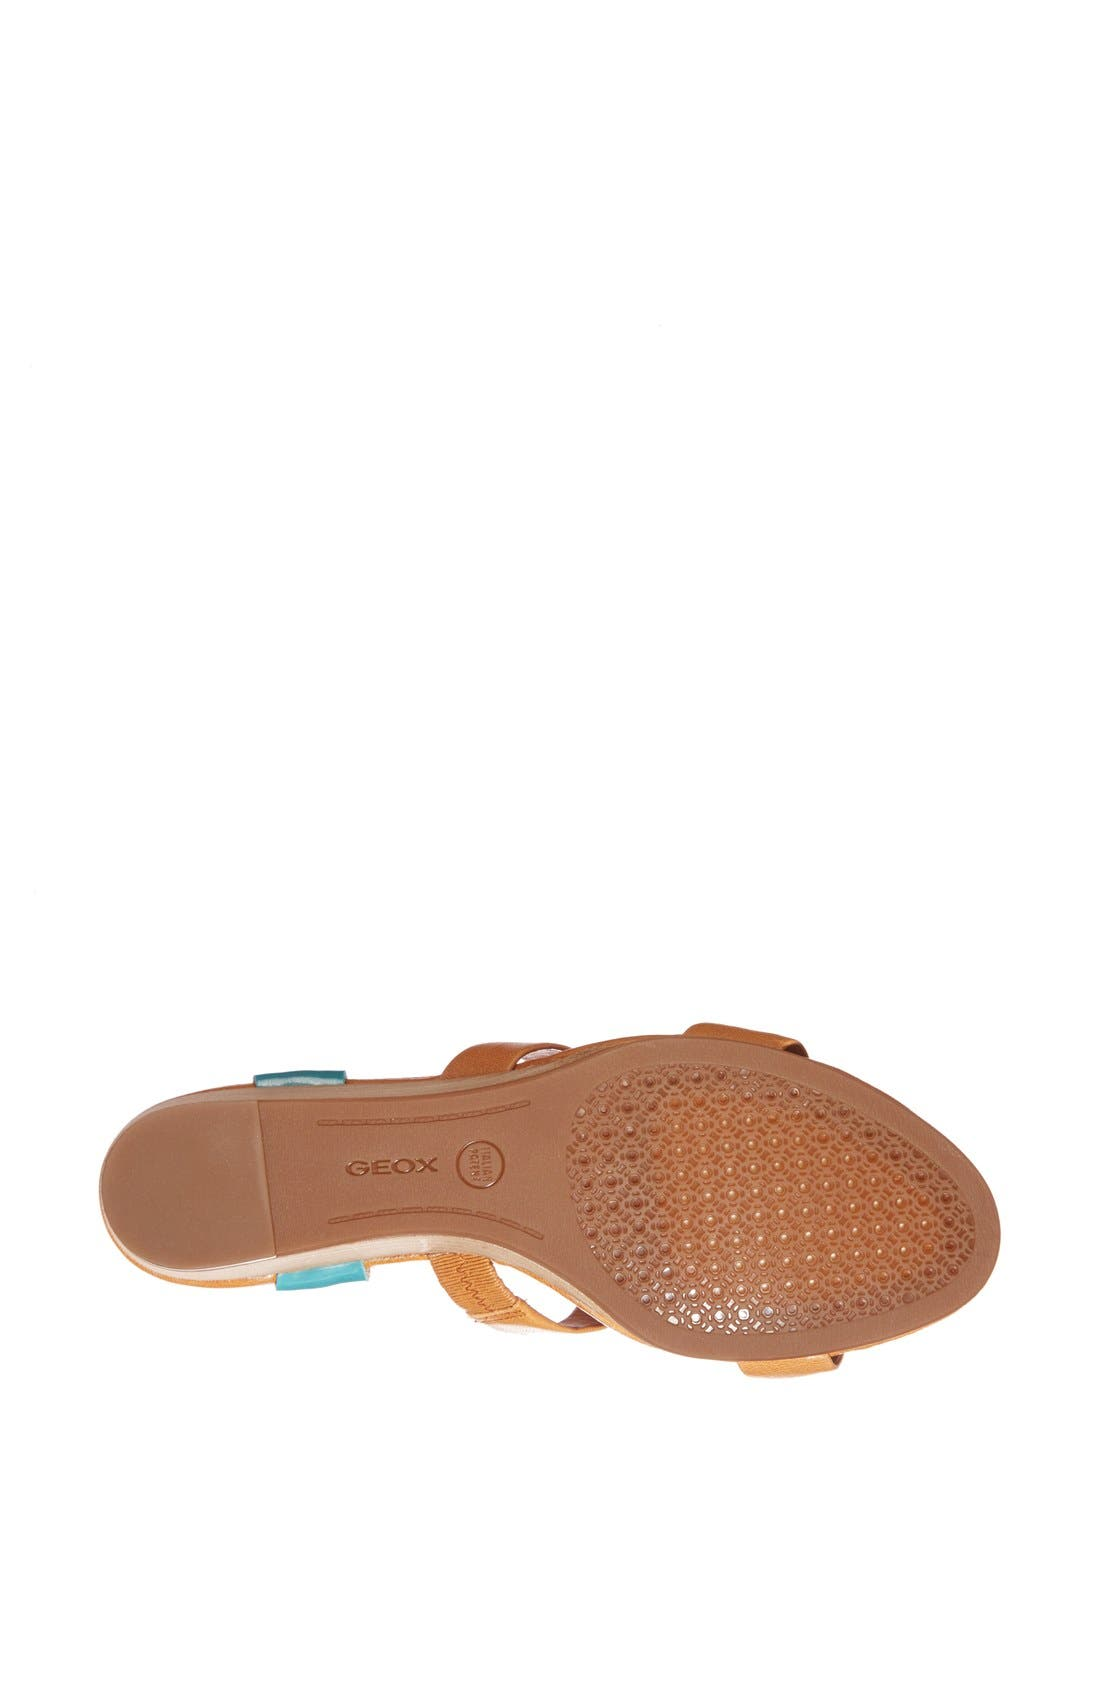 GEOX,                             'Lupe' Leather Sandal,                             Alternate thumbnail 3, color,                             258